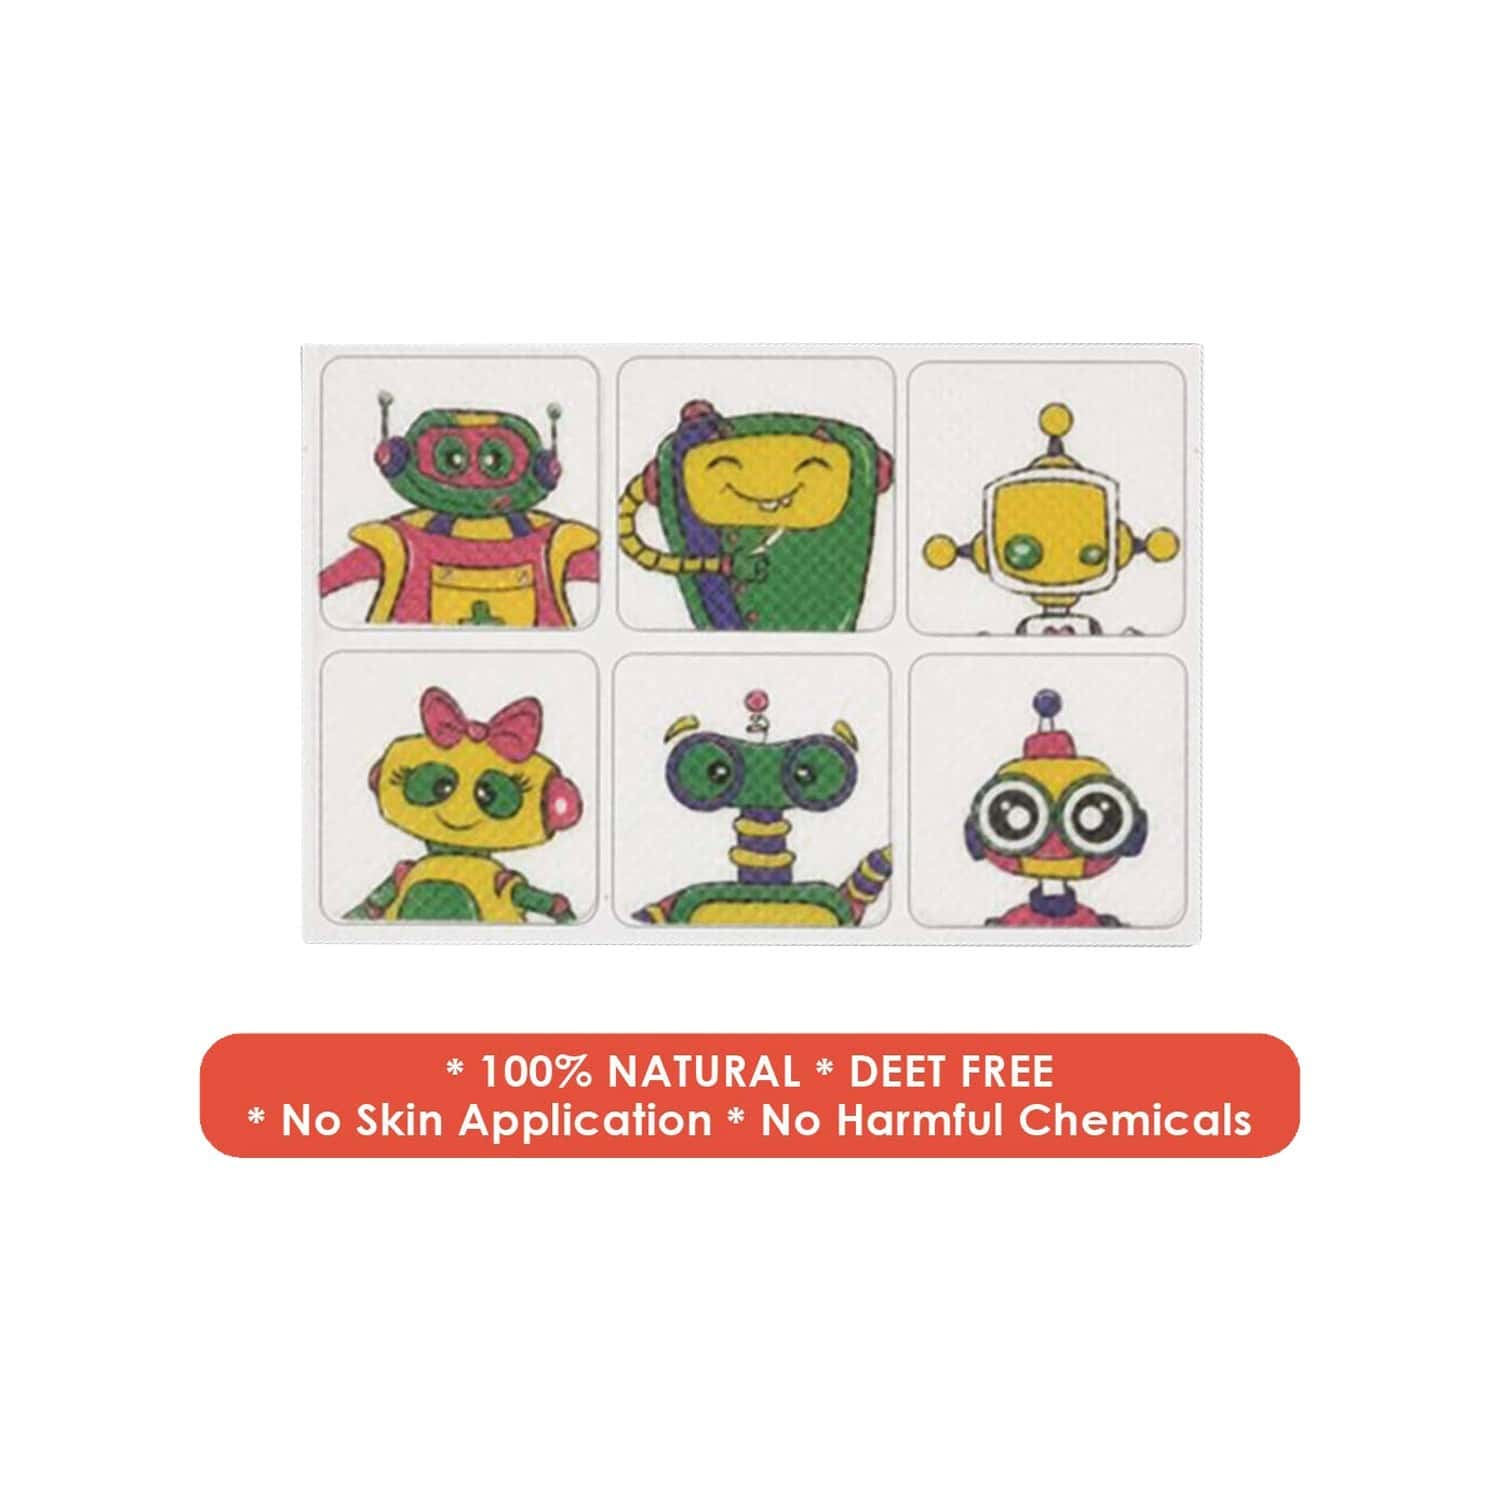 Buddsbuddy Mosquito Repellent Patches - 12pc